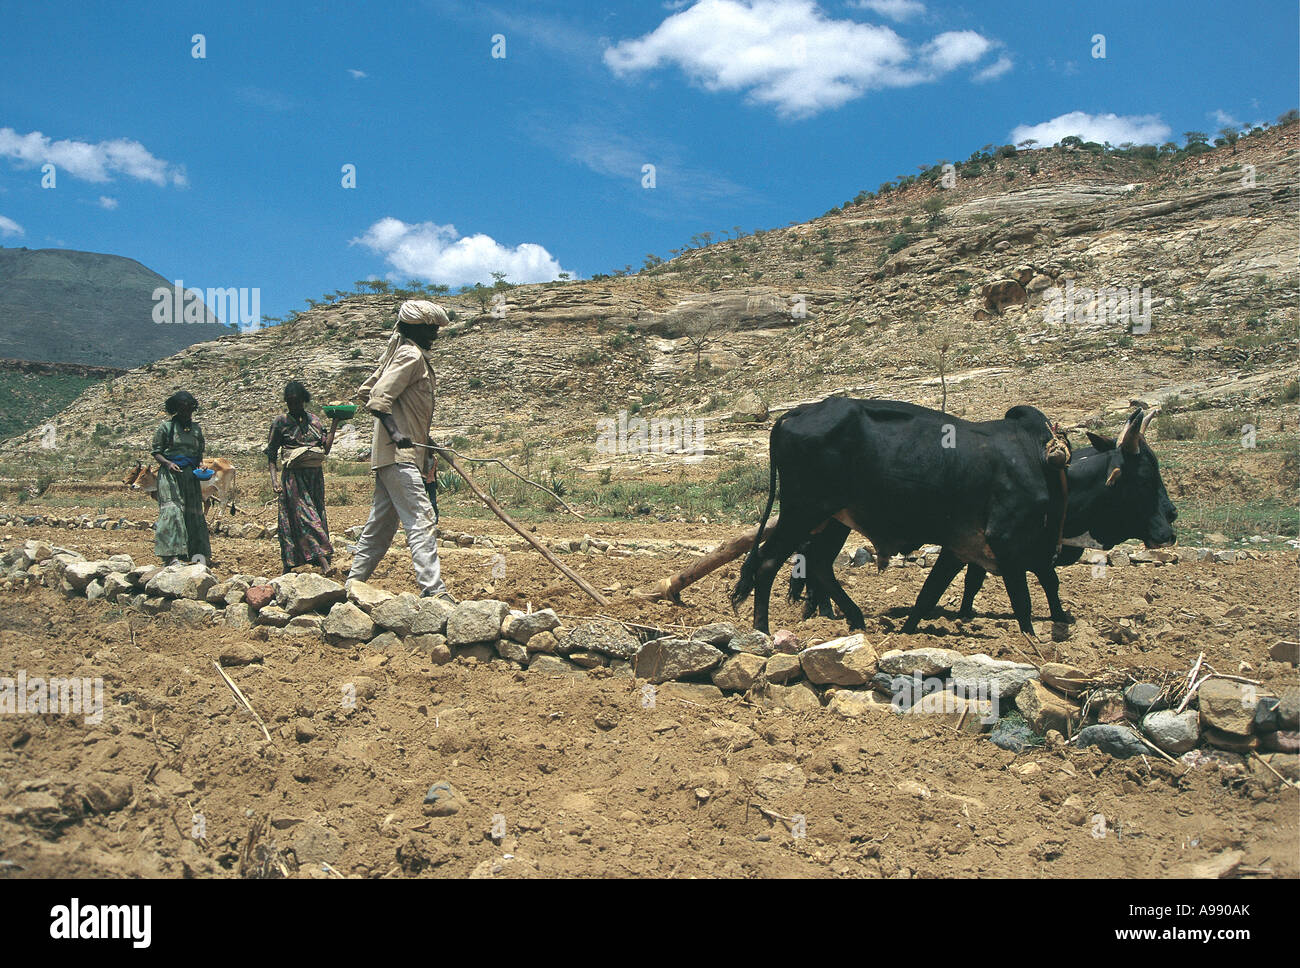 Ploughing using oxen and planting seeds Tigrai Ethiopia - Stock Image